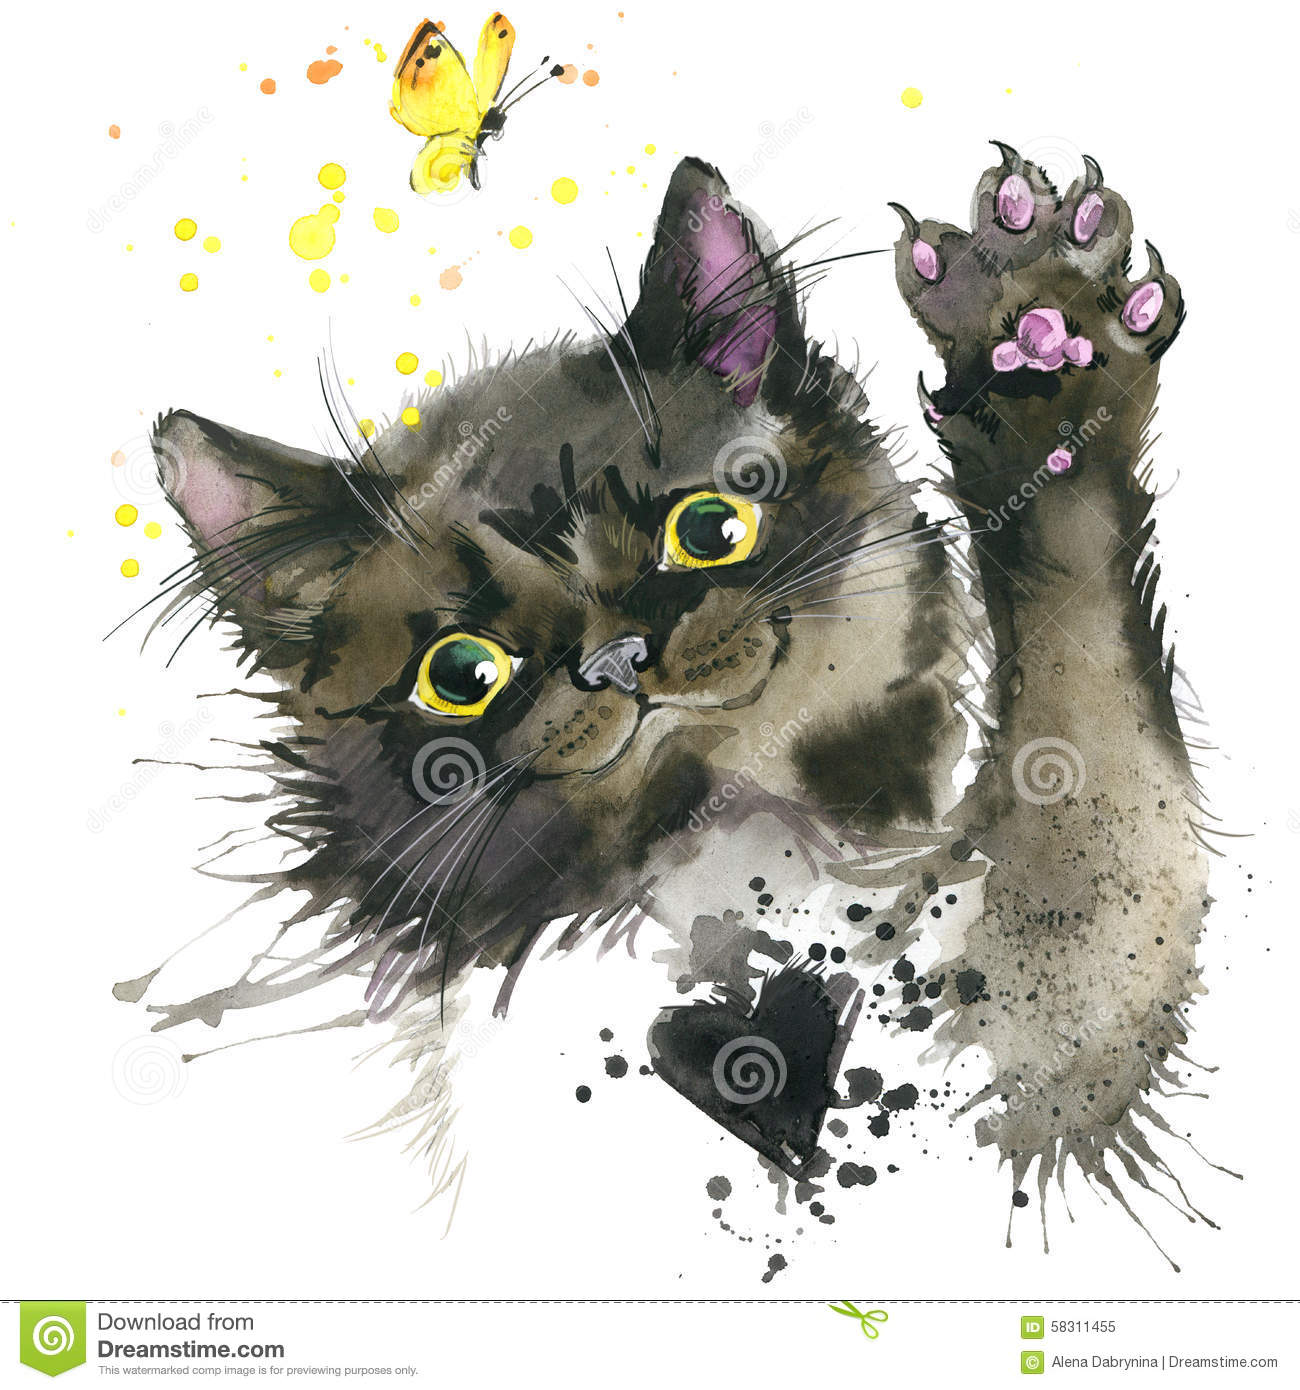 Black Cat Illustration With Splash Watercolor Textured